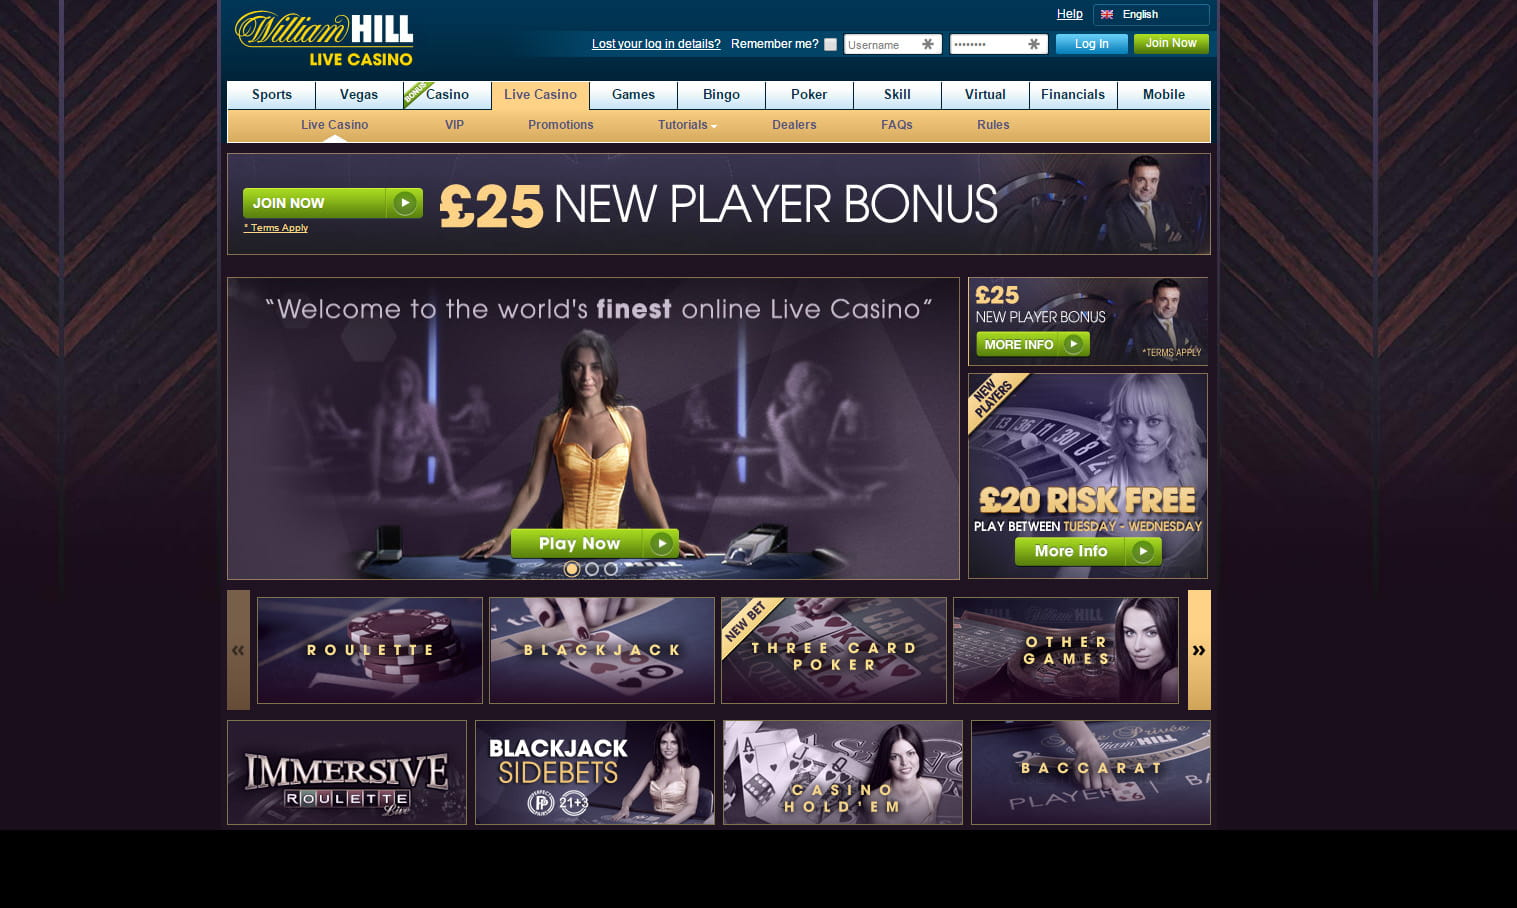 Live Dealer Online Casino | $/£/€400 Welcome Bonus | Casino.com